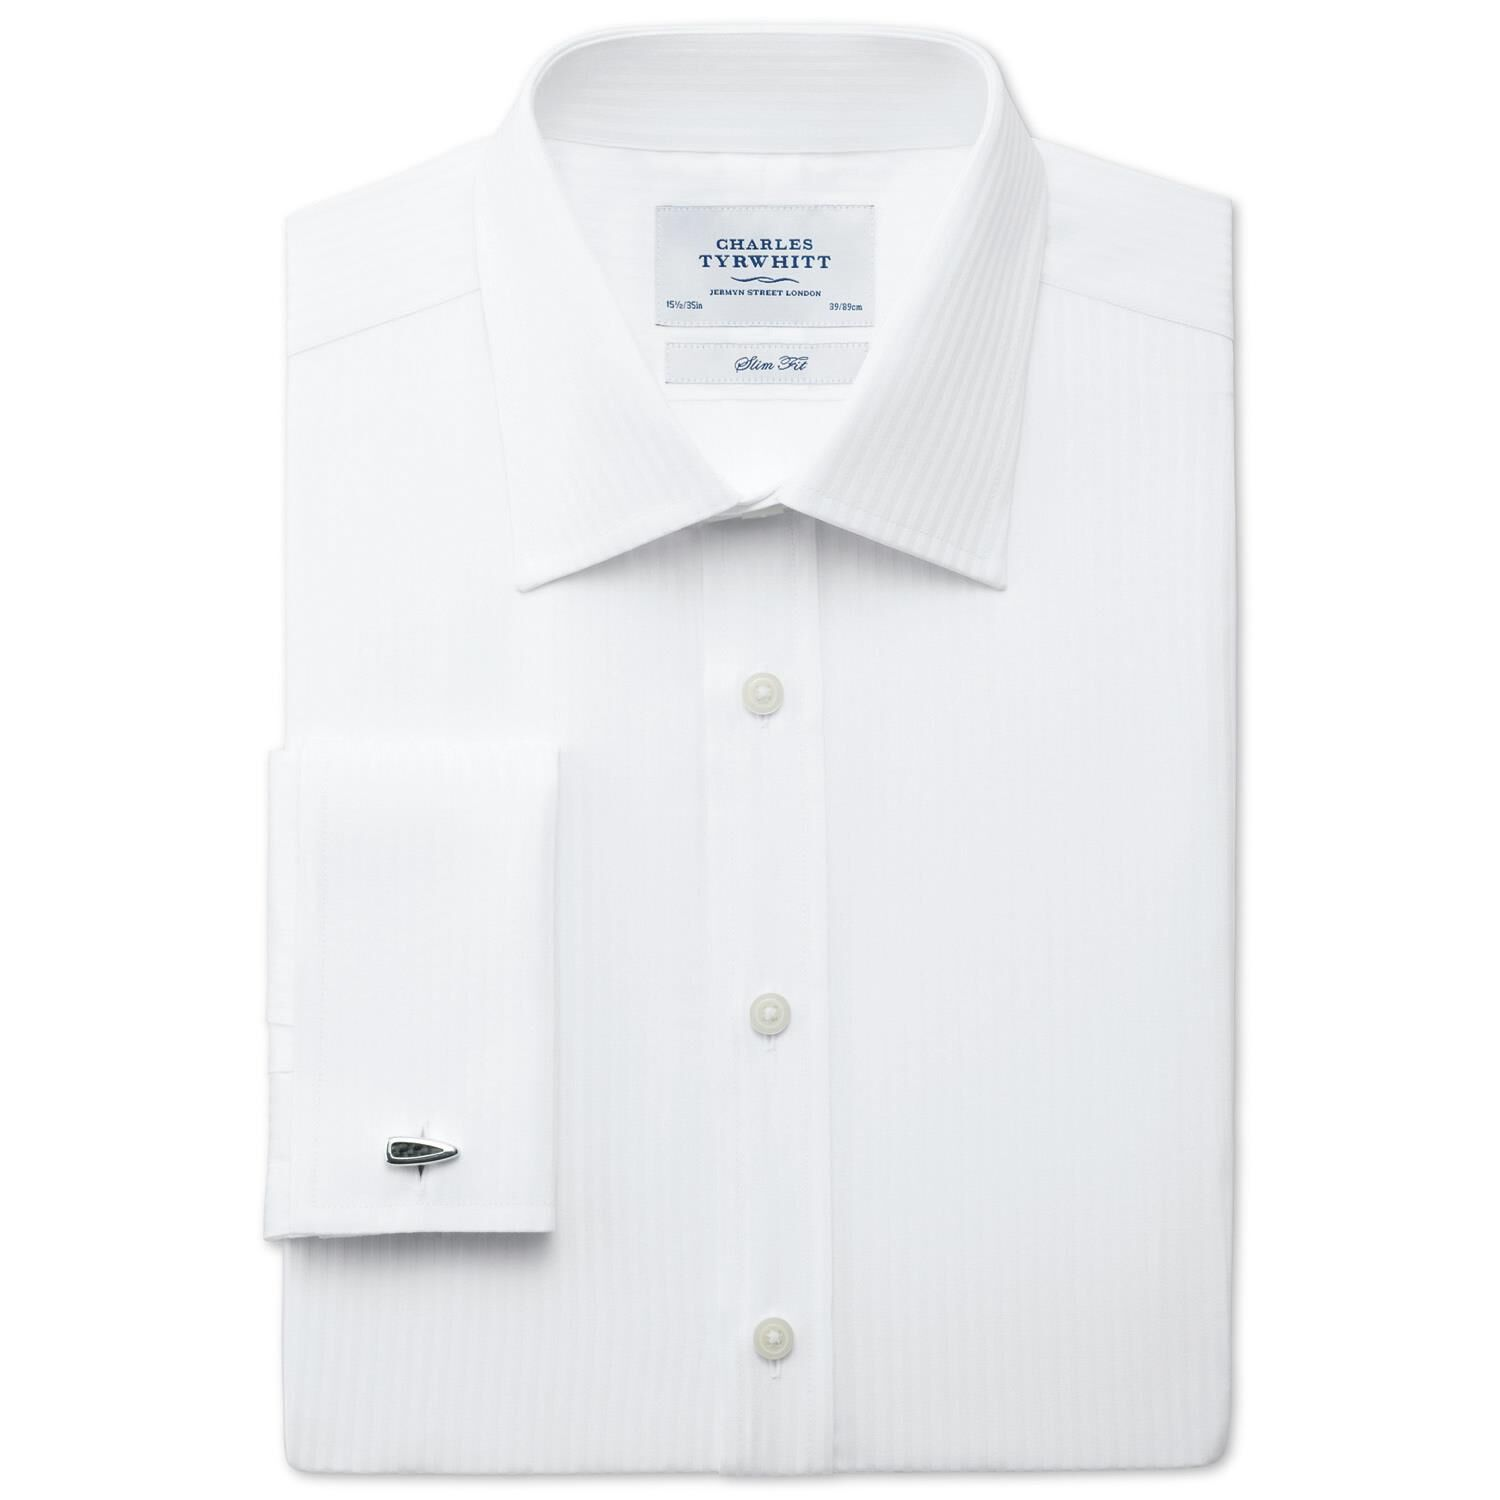 Slim Fit Stripe White Satin Egyptian Cotton Formal Shirt Double Cuff Size 16.5/35 by Charles Tyrwhit